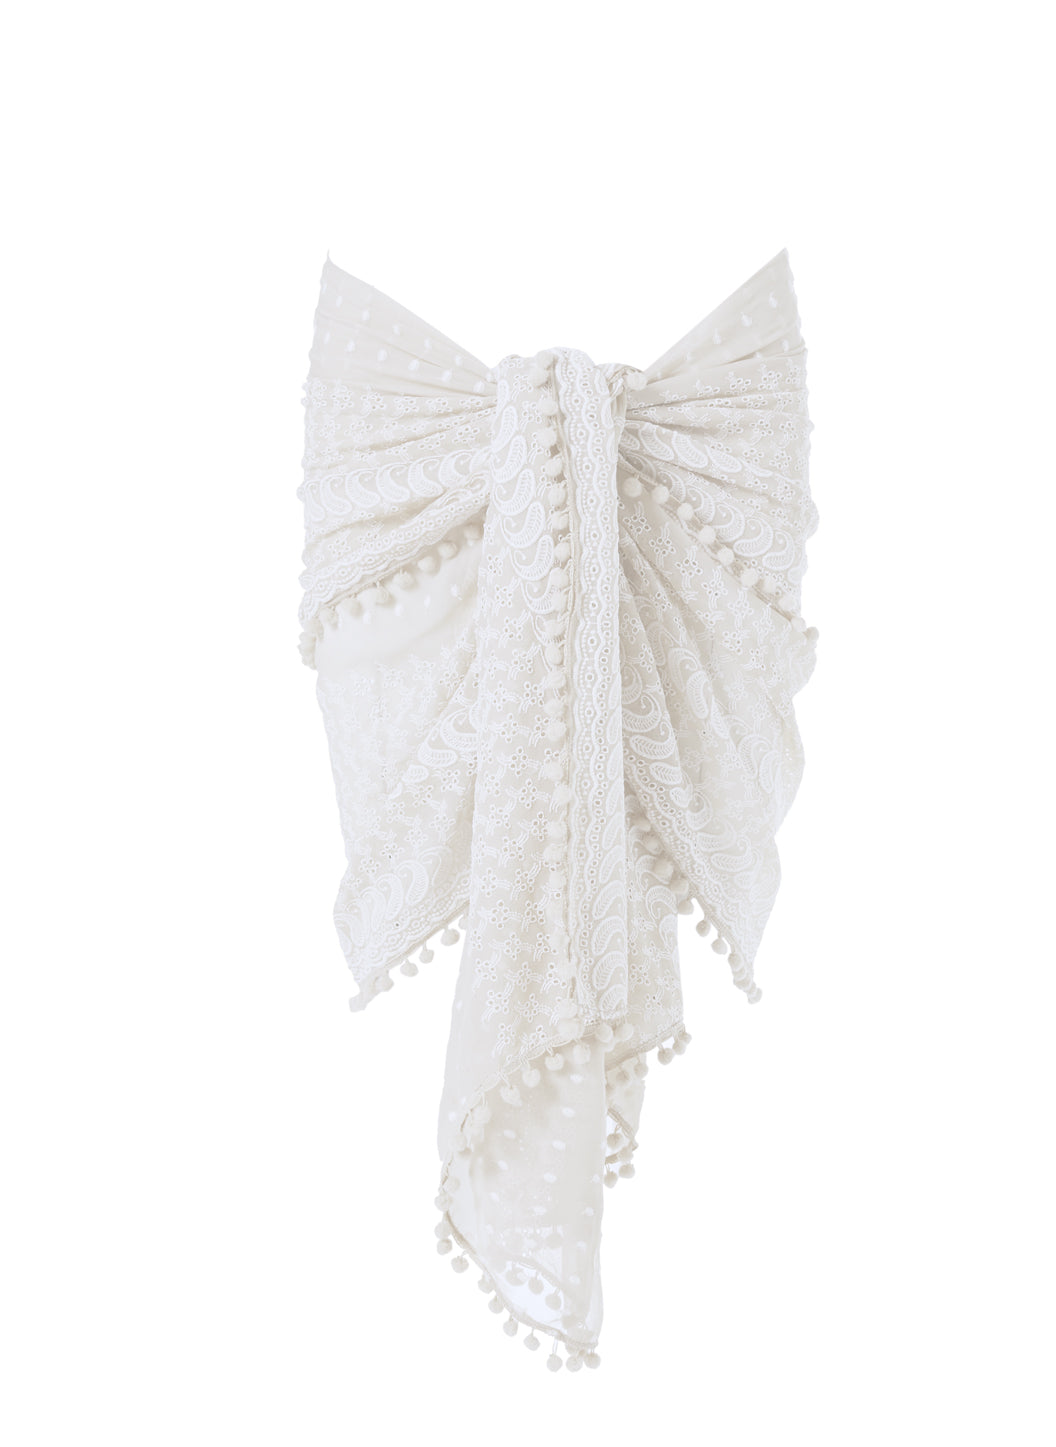 Pareo White Embroidered Multi-Way Cover Up - Melissa Odabash Accessories